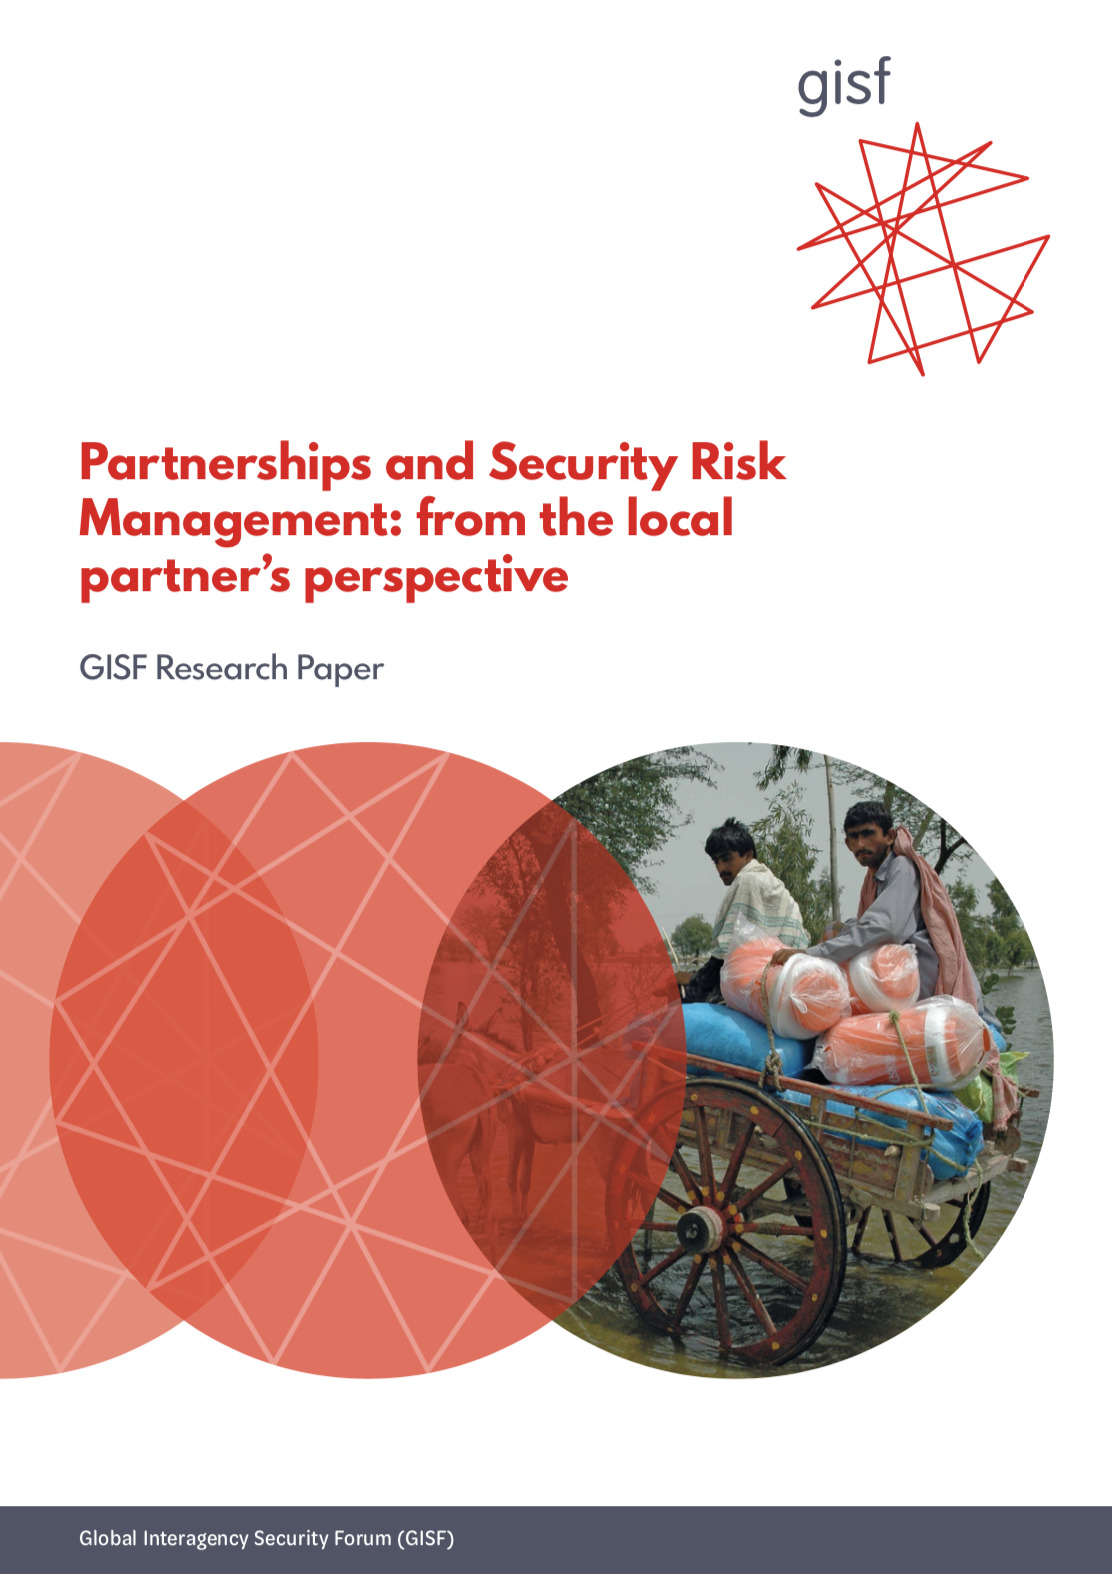 Partnerships and Security Risk Management: from the local partner's perspective